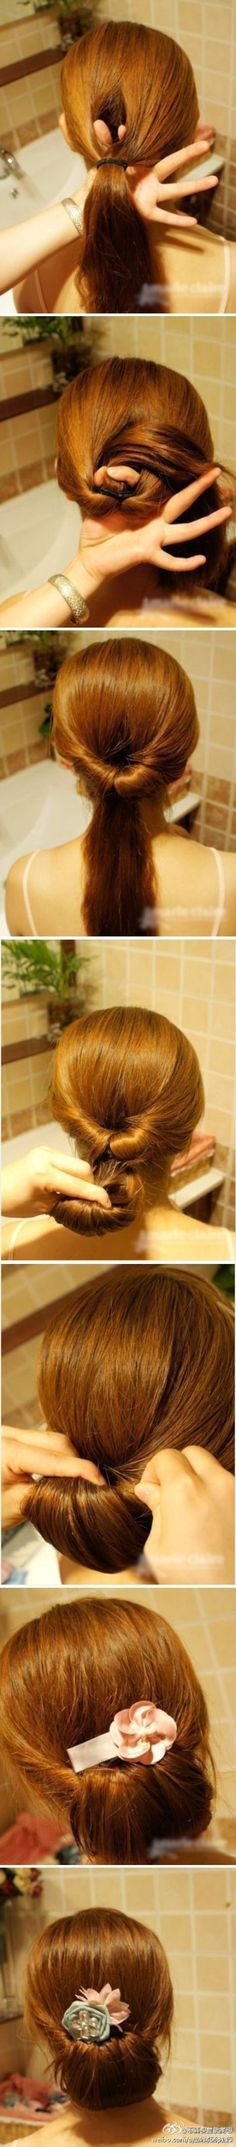 DIY Hairstyle Tutorials